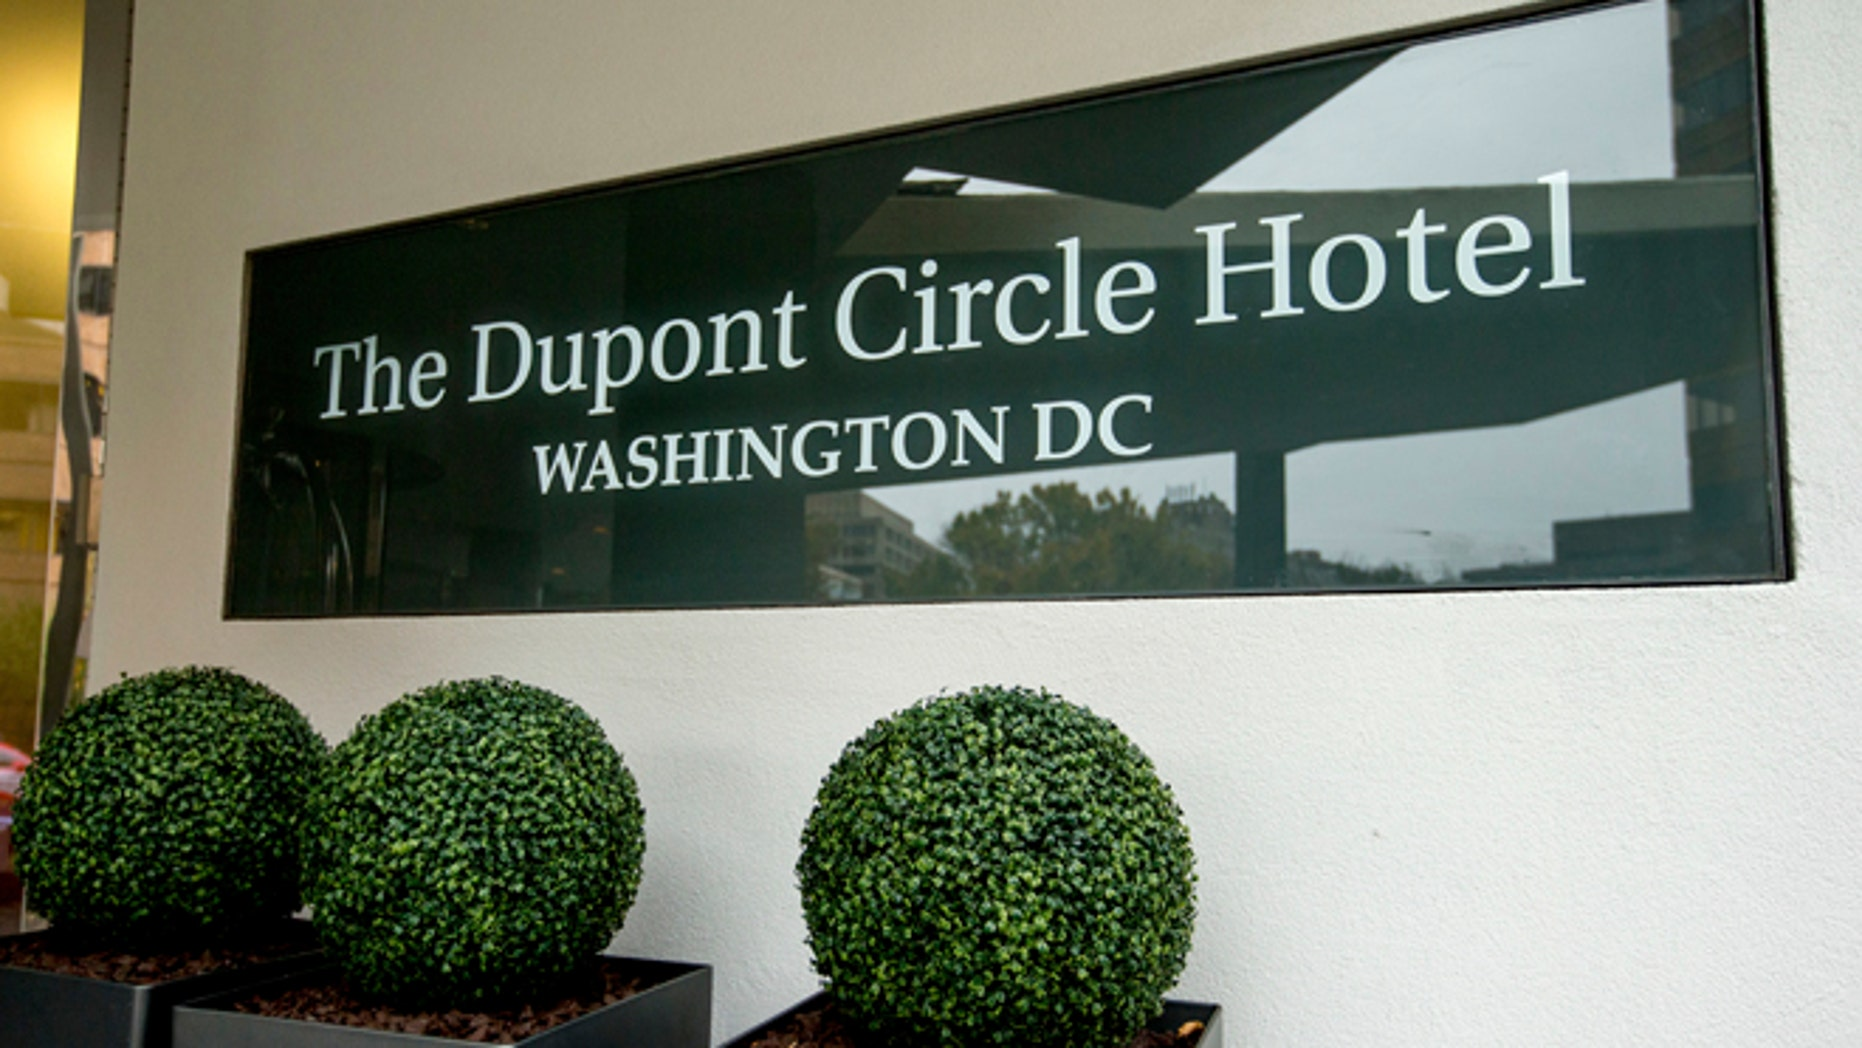 FILE - In this Nov. 7, 2015, file photo, the Dupont Circle Hotel in Washington where Mikhail Lesin, a former aide to Russian President Vladimir Putin, was found dead on Nov. 5, 2015.